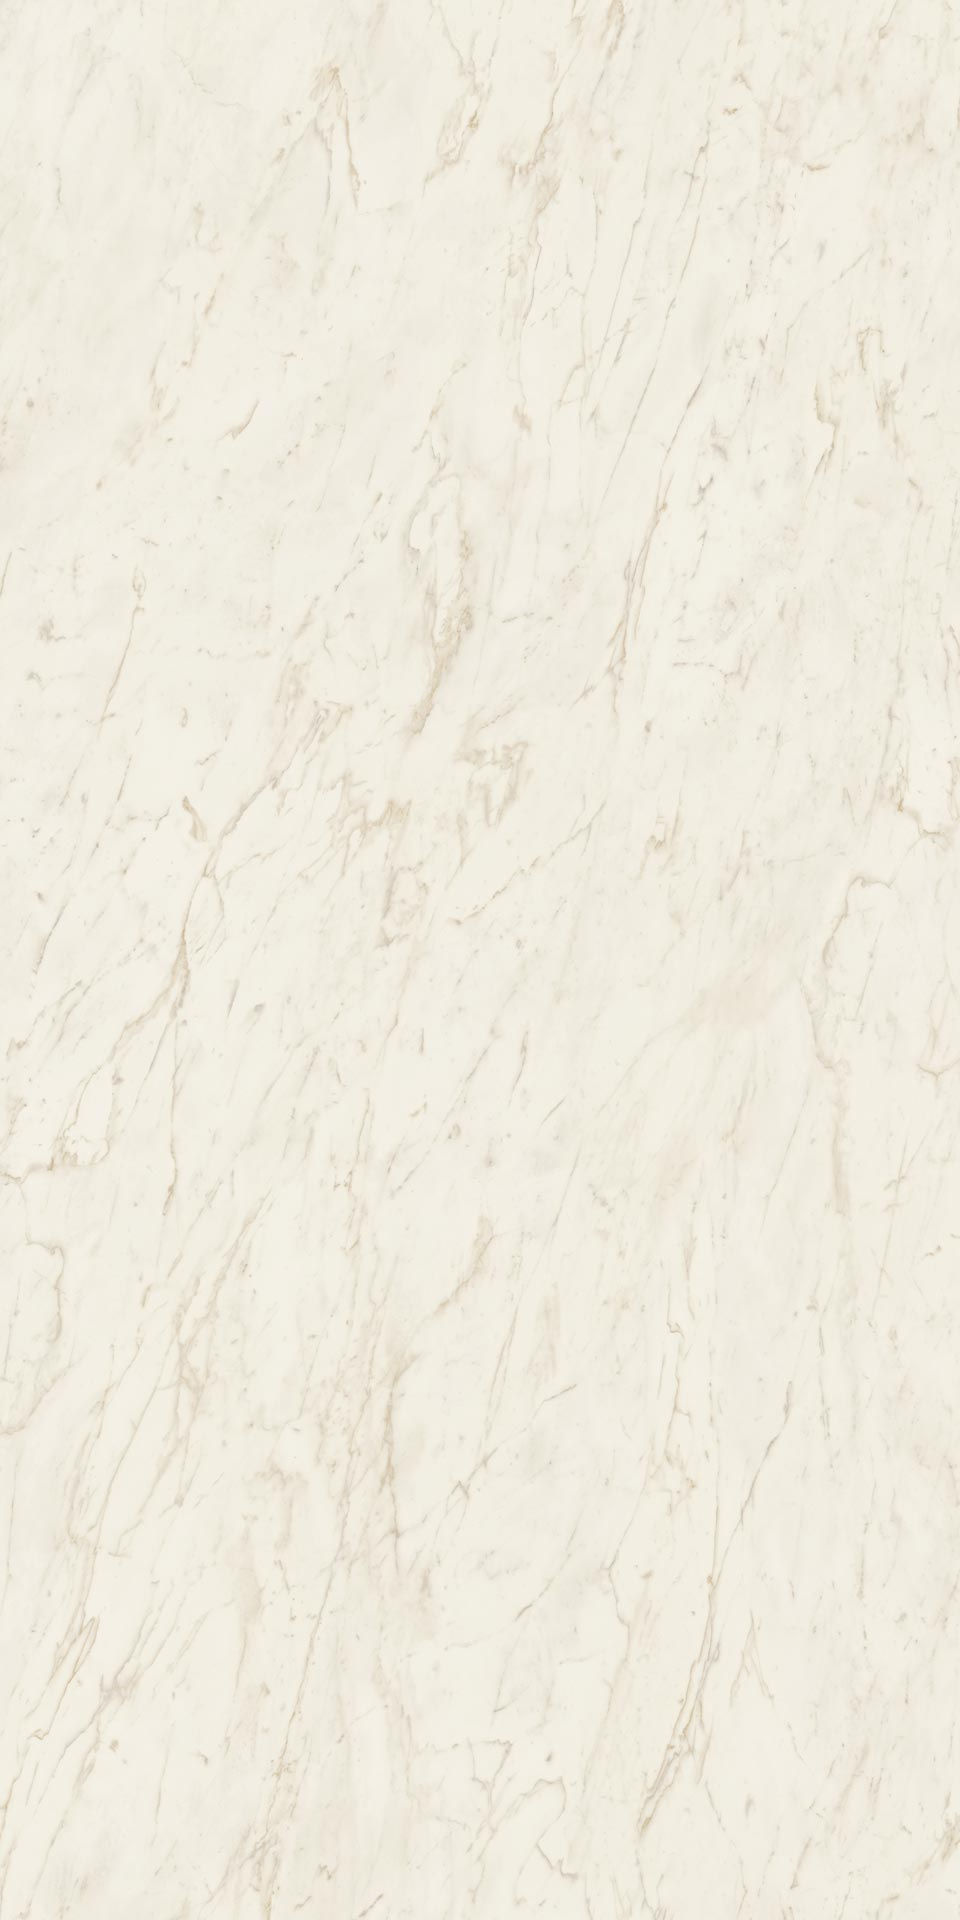 cremo-delicato-marble-effect-slabs-for-flooring-cladding